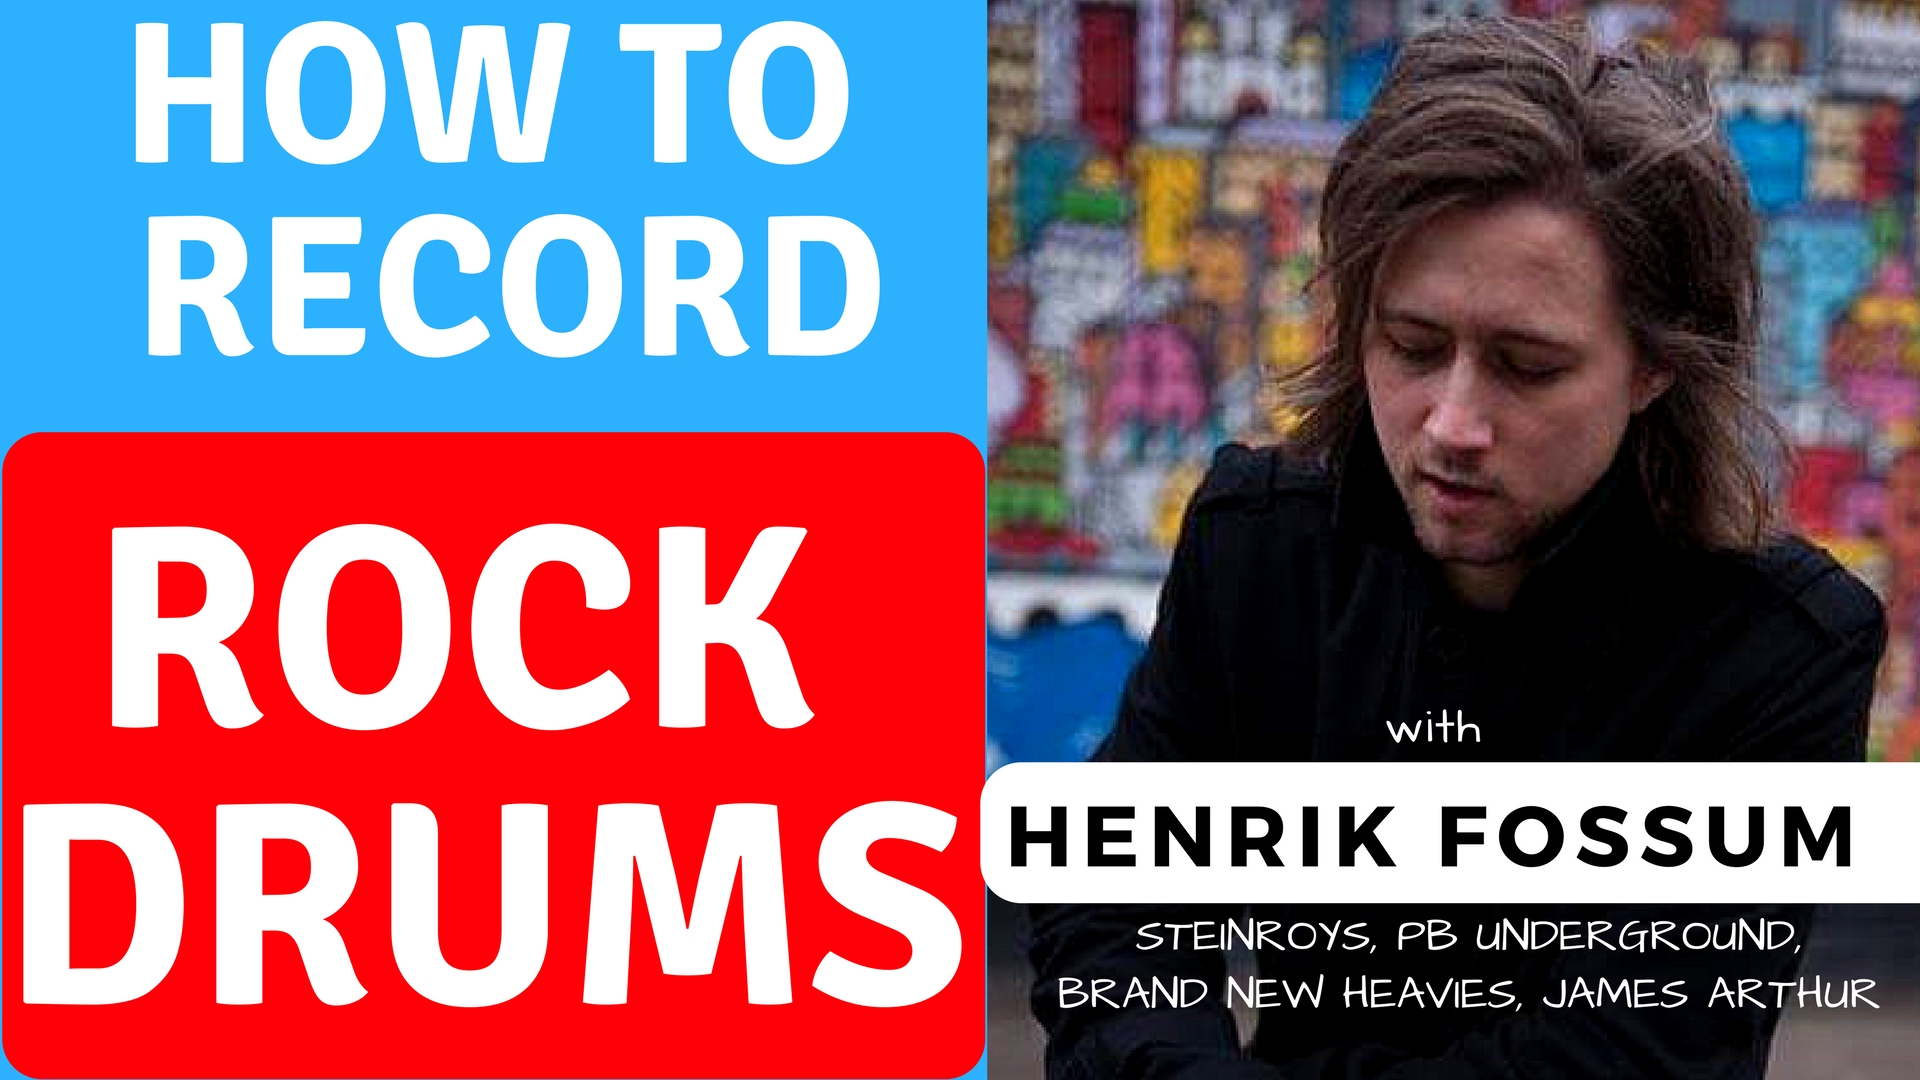 VLOG #1 – How To Record ROCK Drums – with Henrik Fossum